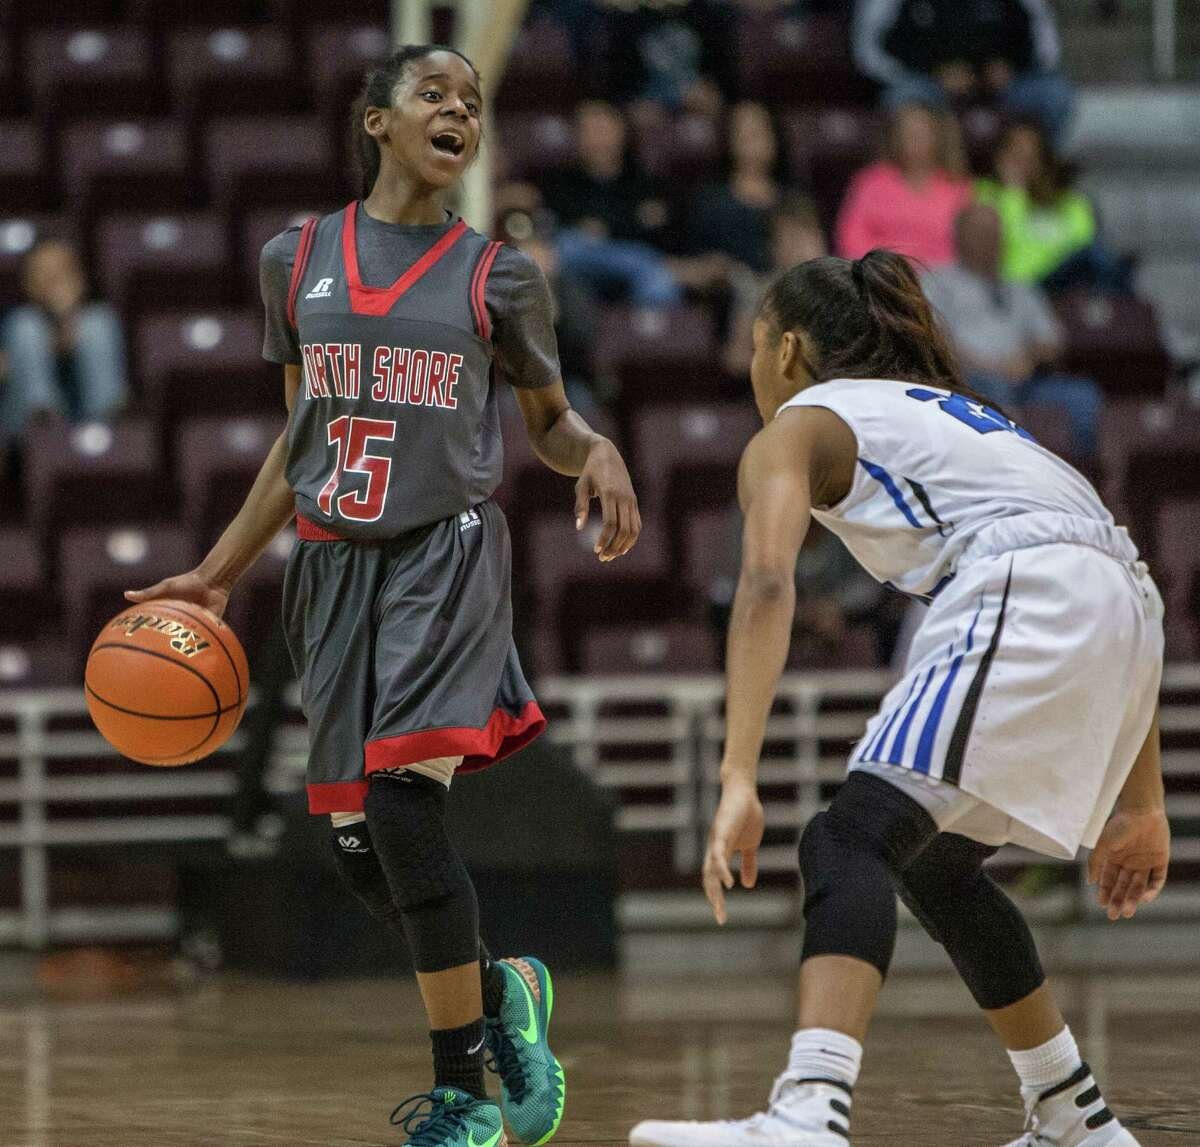 Chasity Patterson of North Shore calls out a play during a game Saturday February 27, 2016. North Shore played Clear Springs in the girls basketball Region III finals at the Campbell Center.